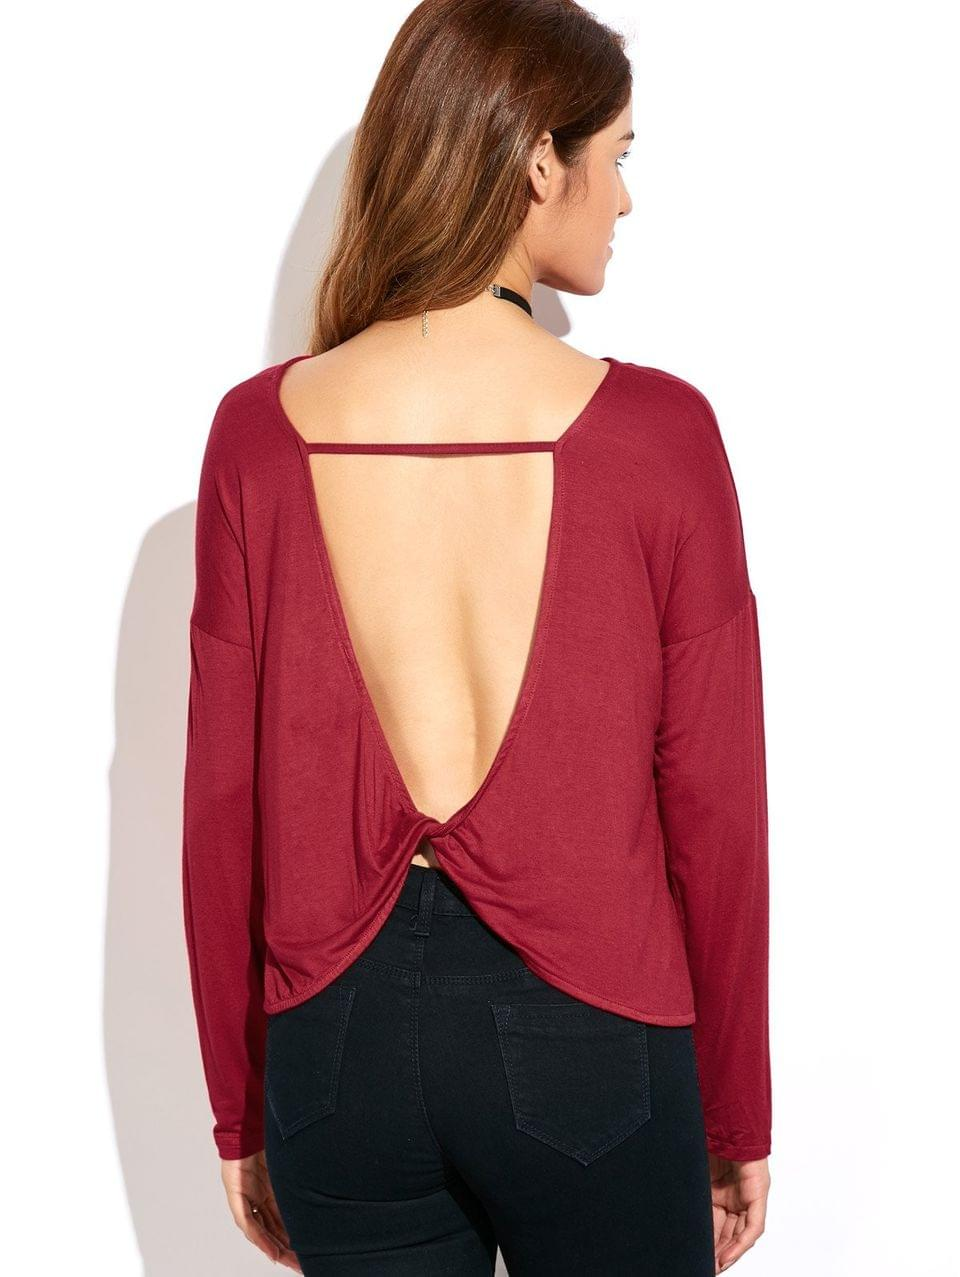 Women's Twisted Open Back Long Sleeve T-Shirt - Red S